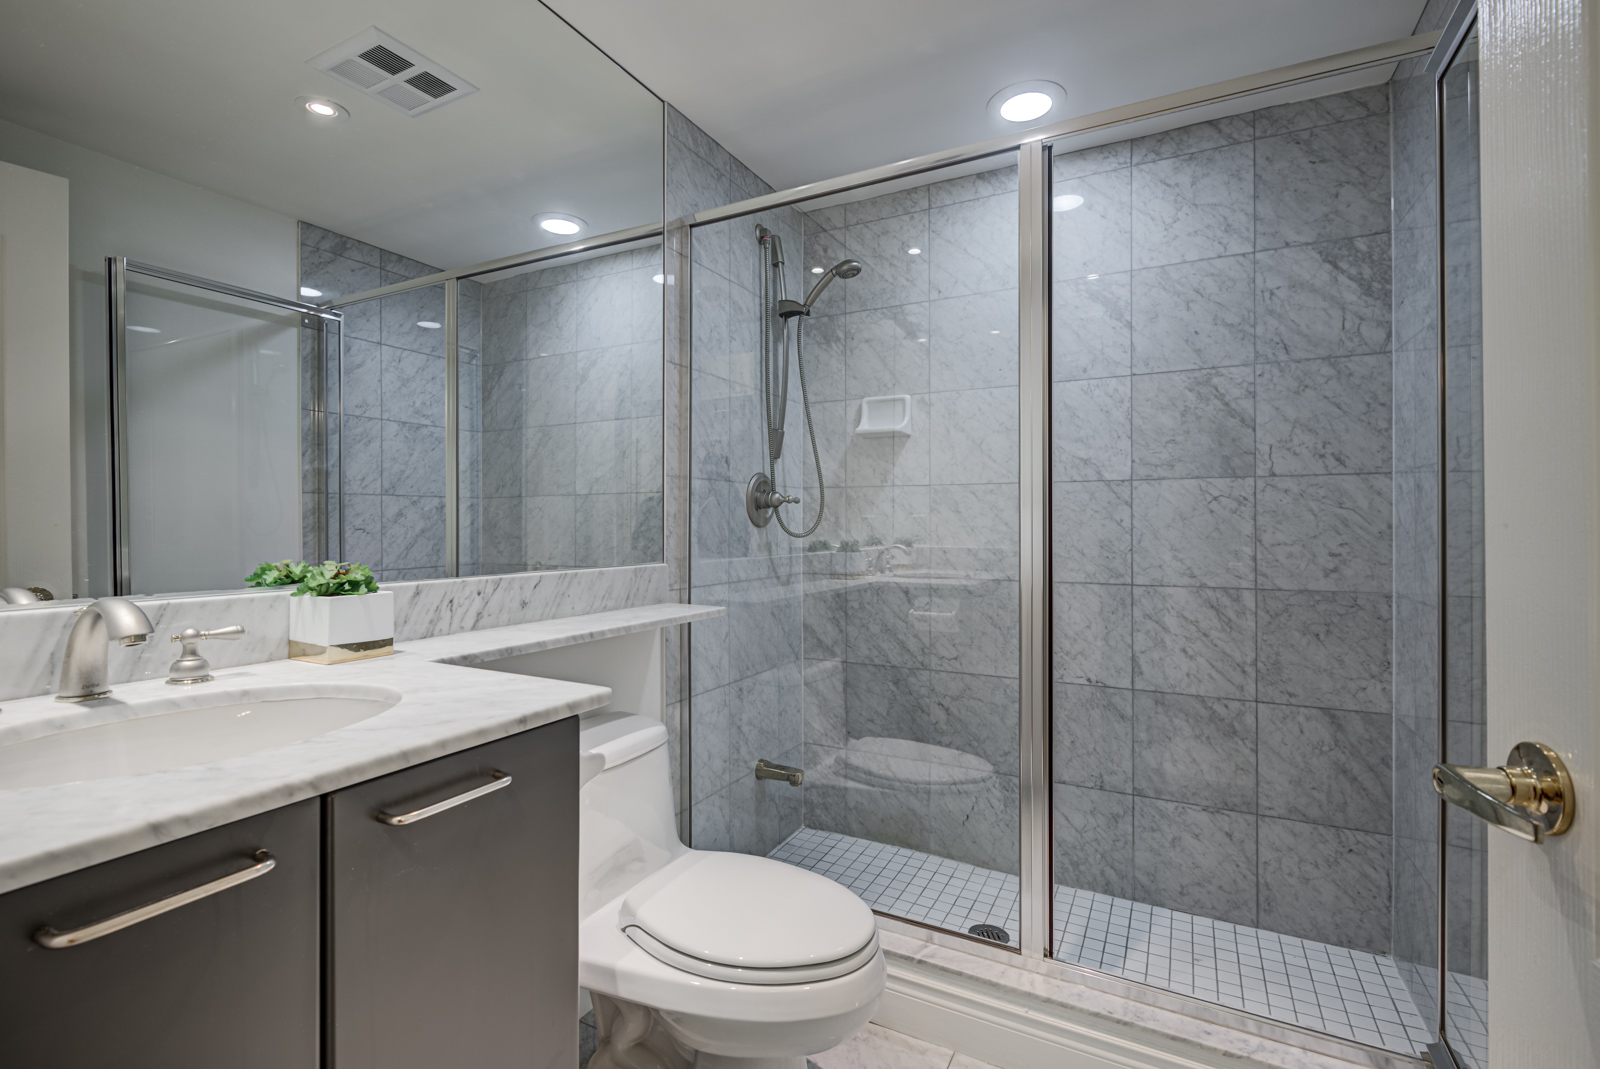 Bathroom in dark grays, lots of glass, and standing shower with detachable showerhead.